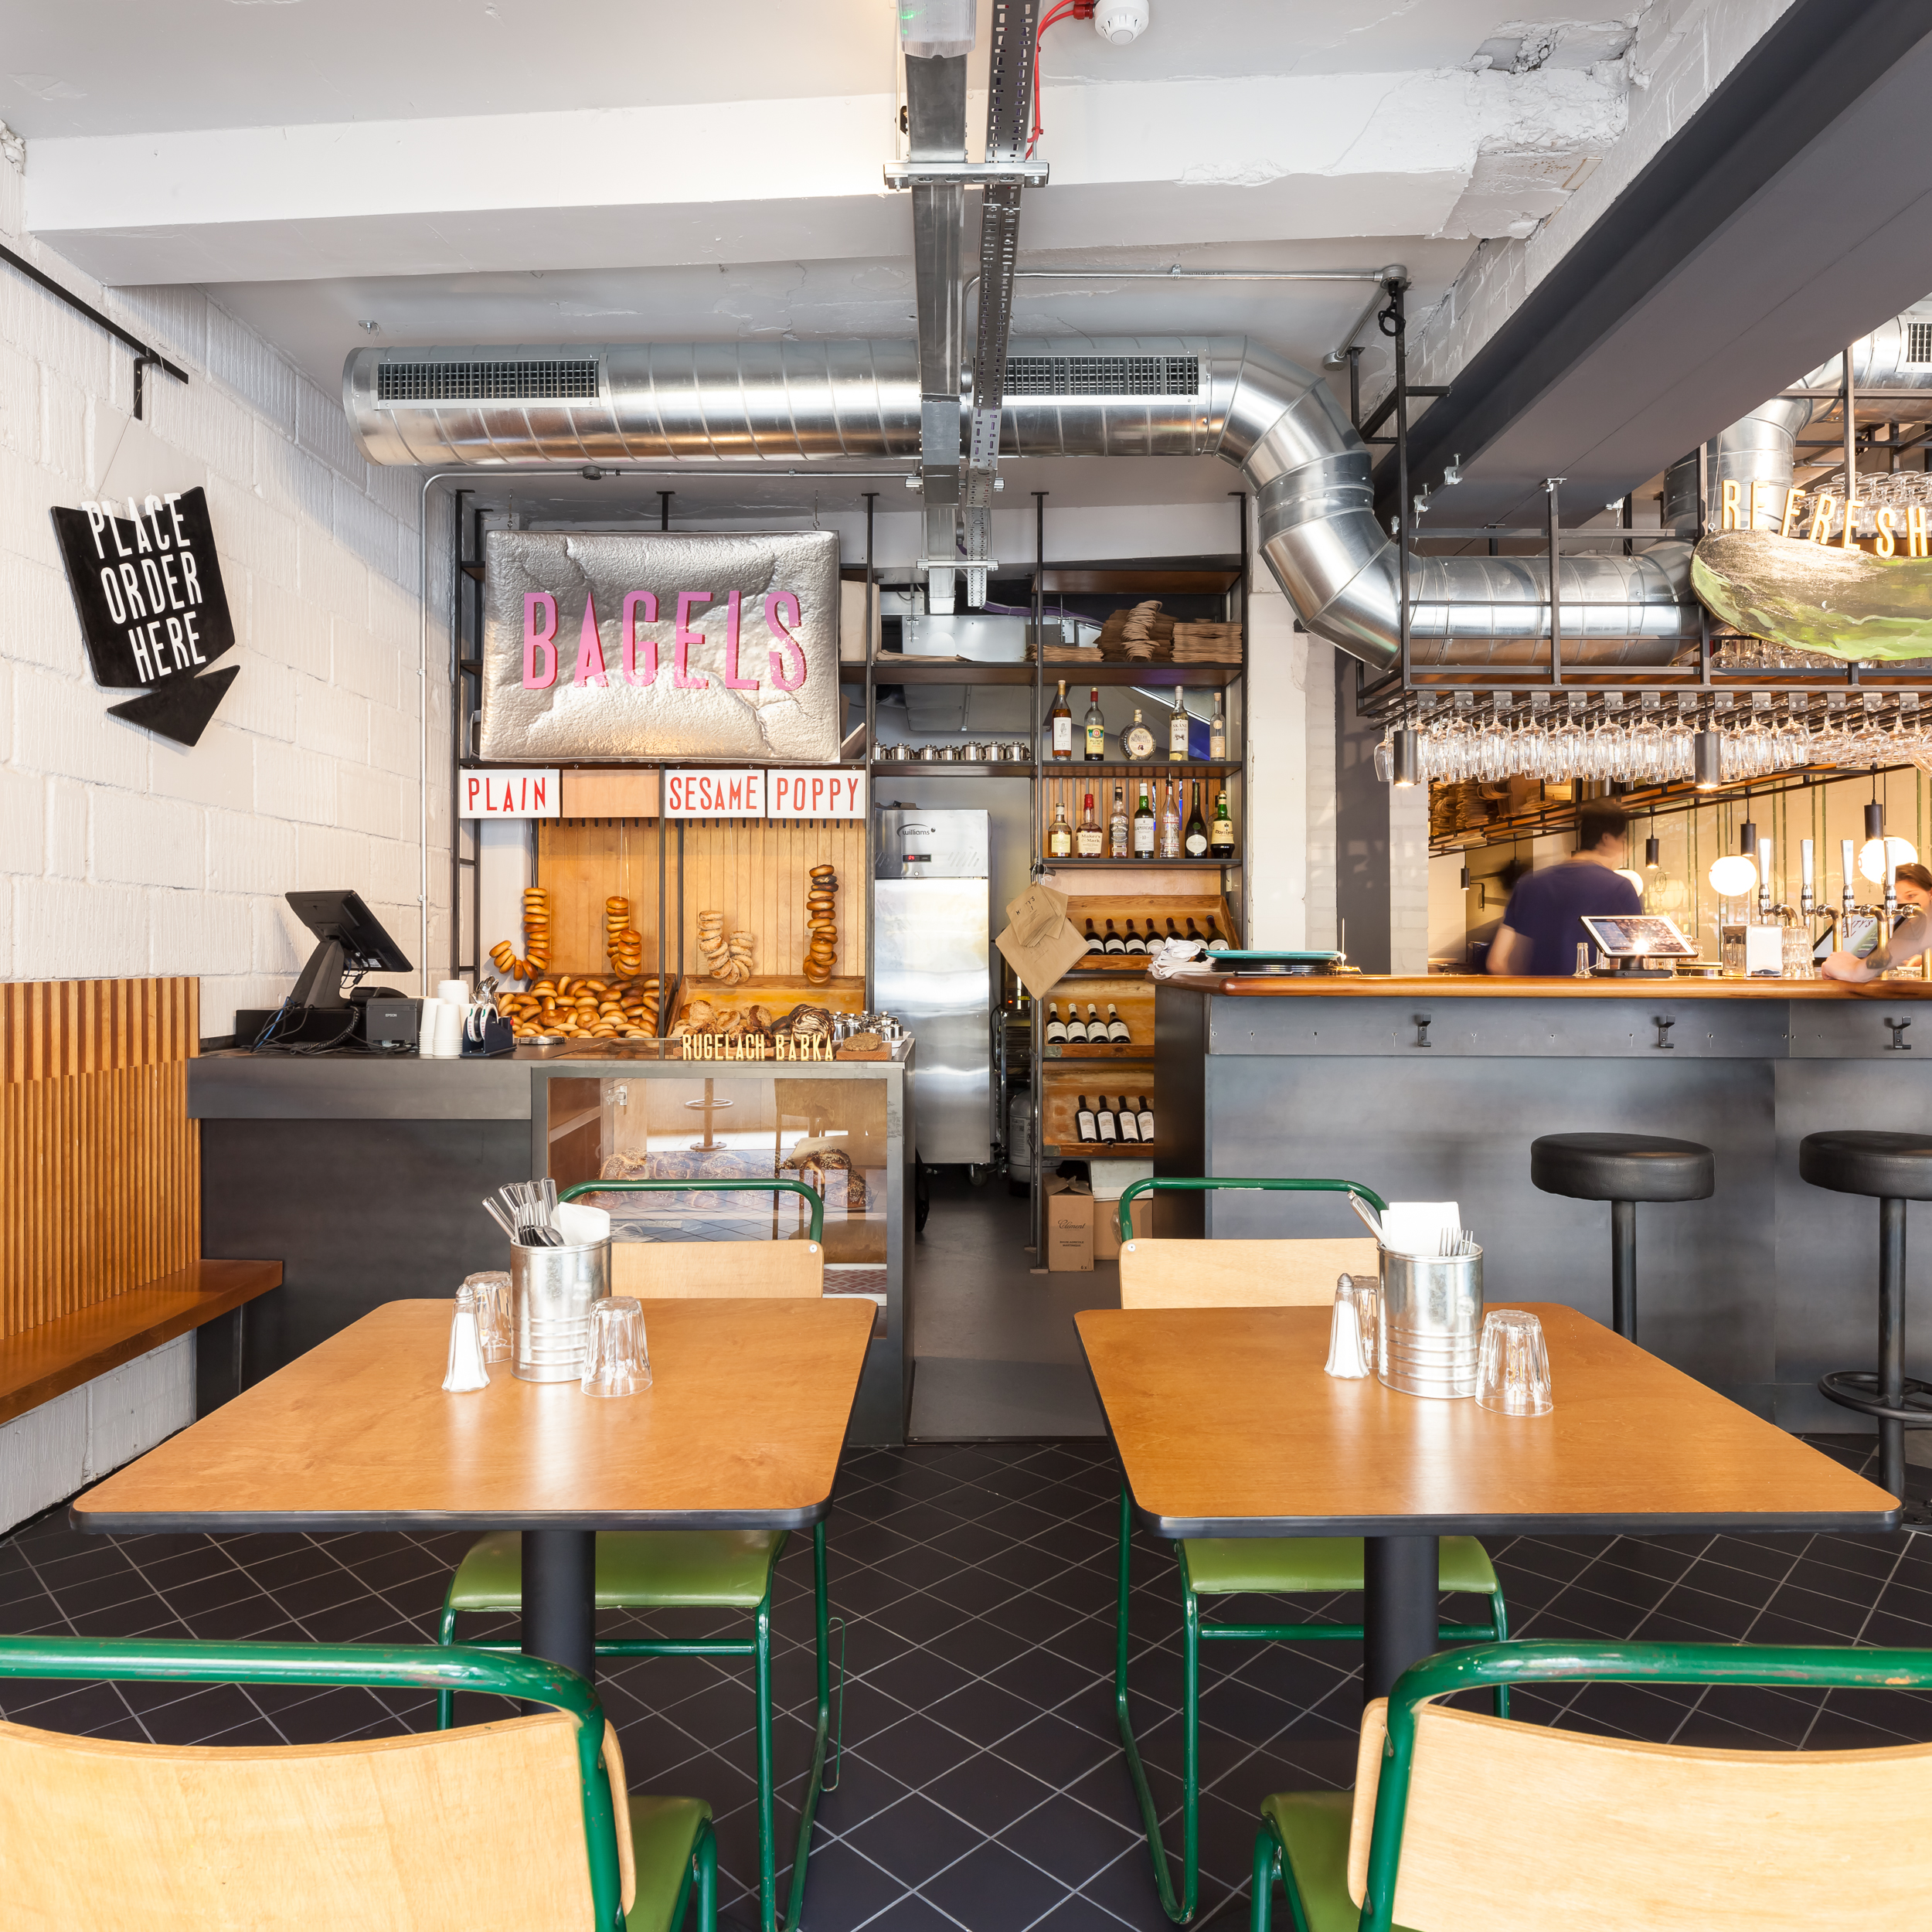 Pano_0320_0326-Edit - MATA_Architects_Montys_Deli.jpg